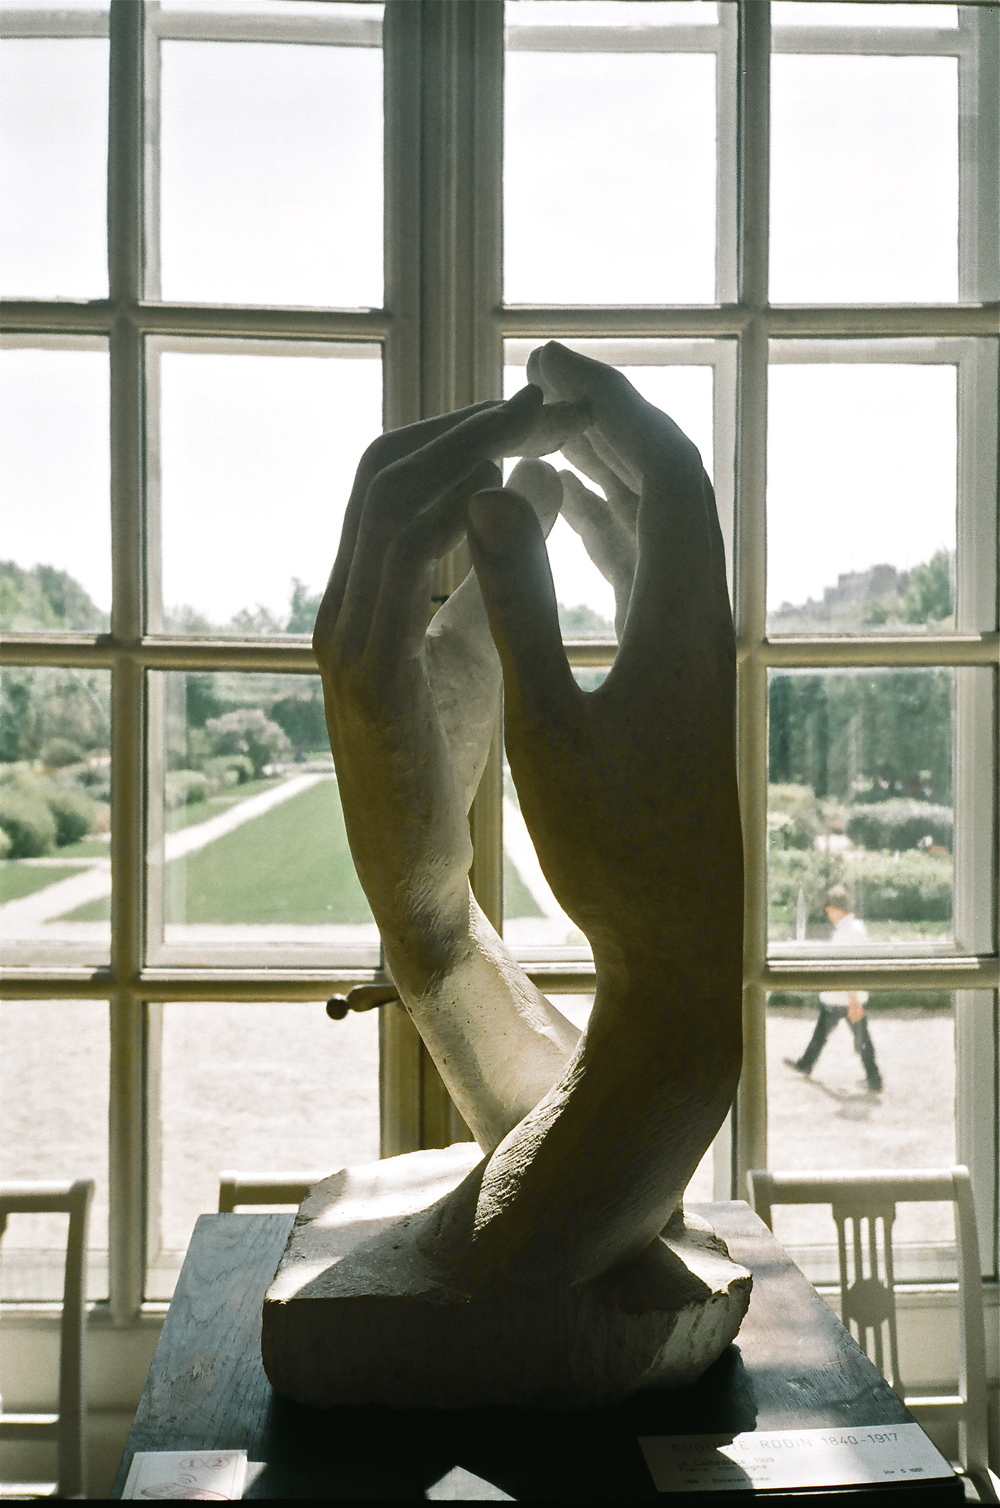 Auguste Rodin             Paris, France (Photo taken on 35mm film)